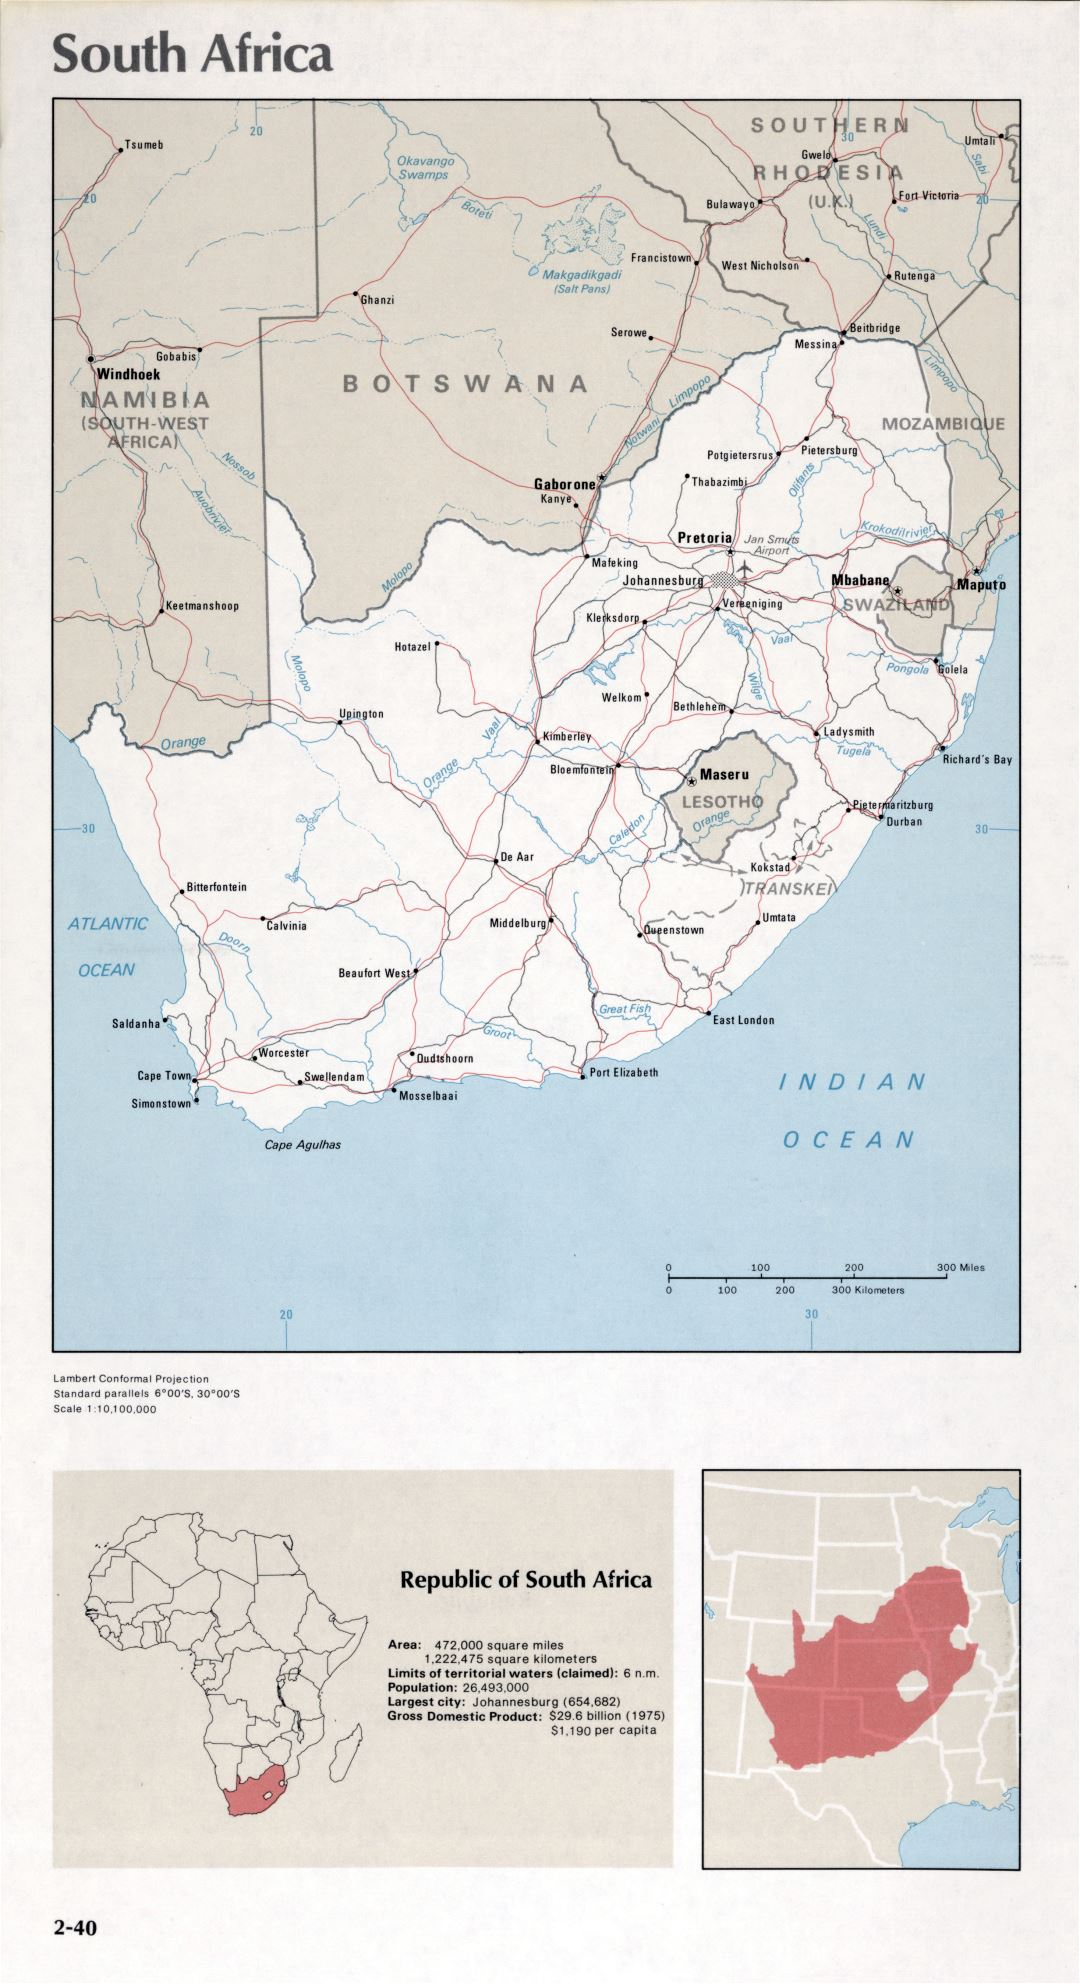 Map of South Africa (2-40)